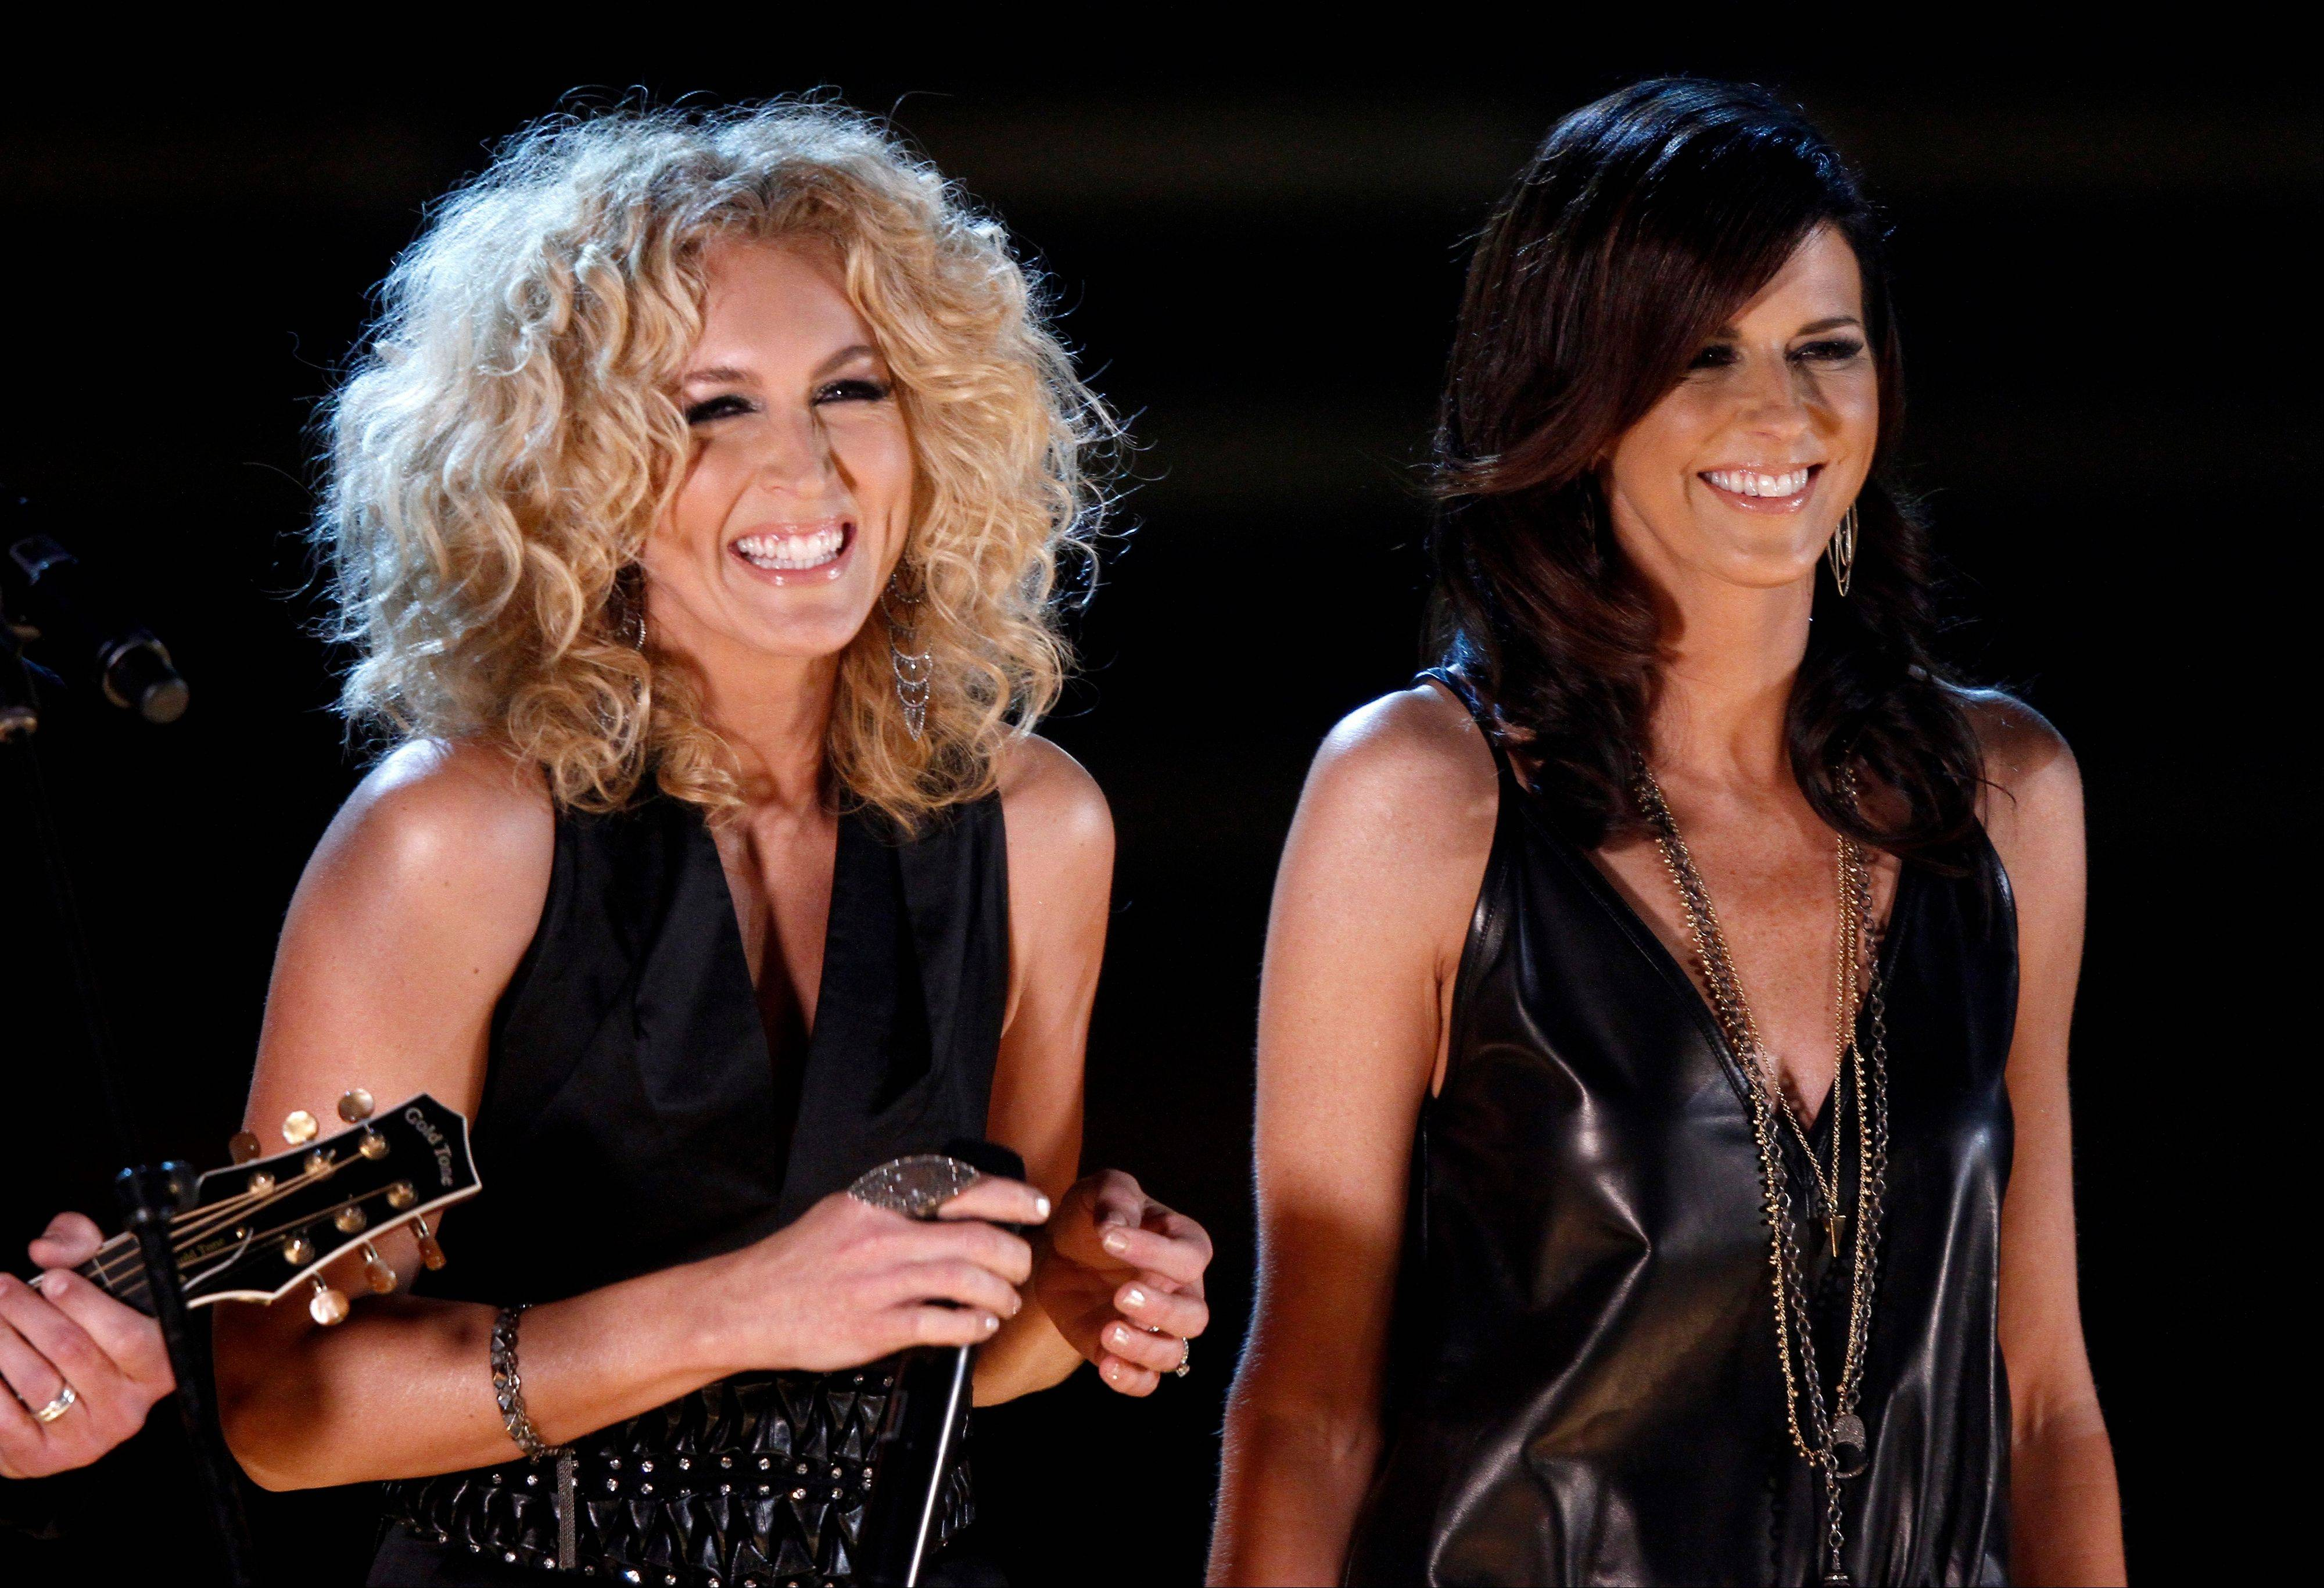 Little Big Town , from left, Kimberly Schlapman, and Karen Fairchild perform